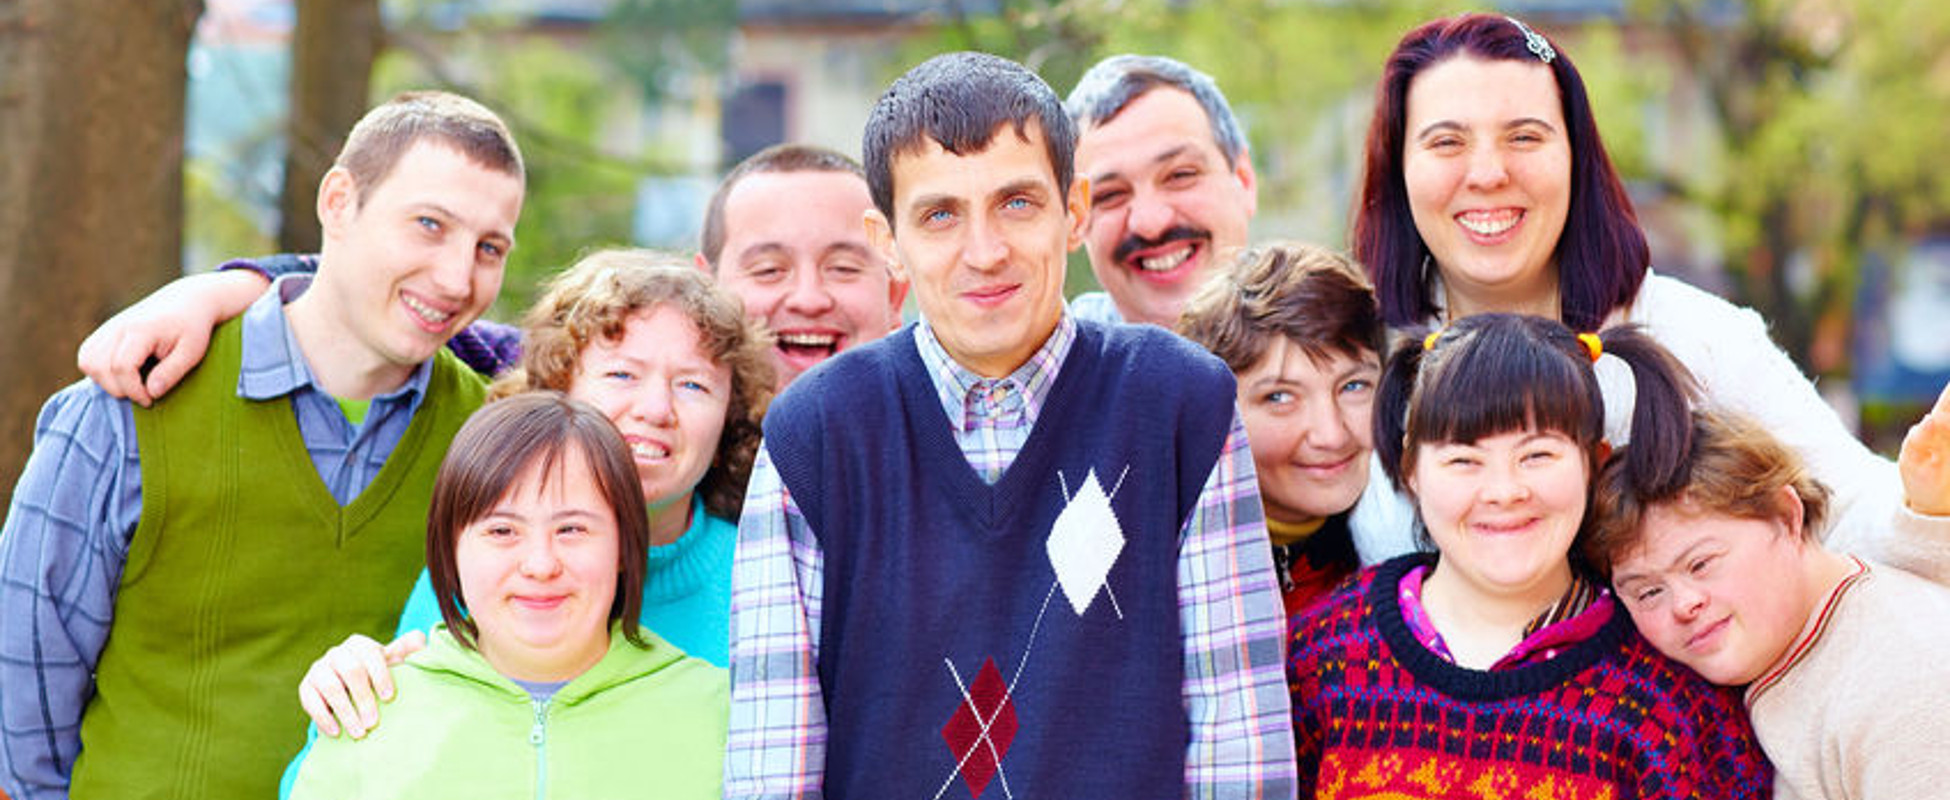 Buddies 4 Life: Group of people with intellectual disabilities outside in the sun